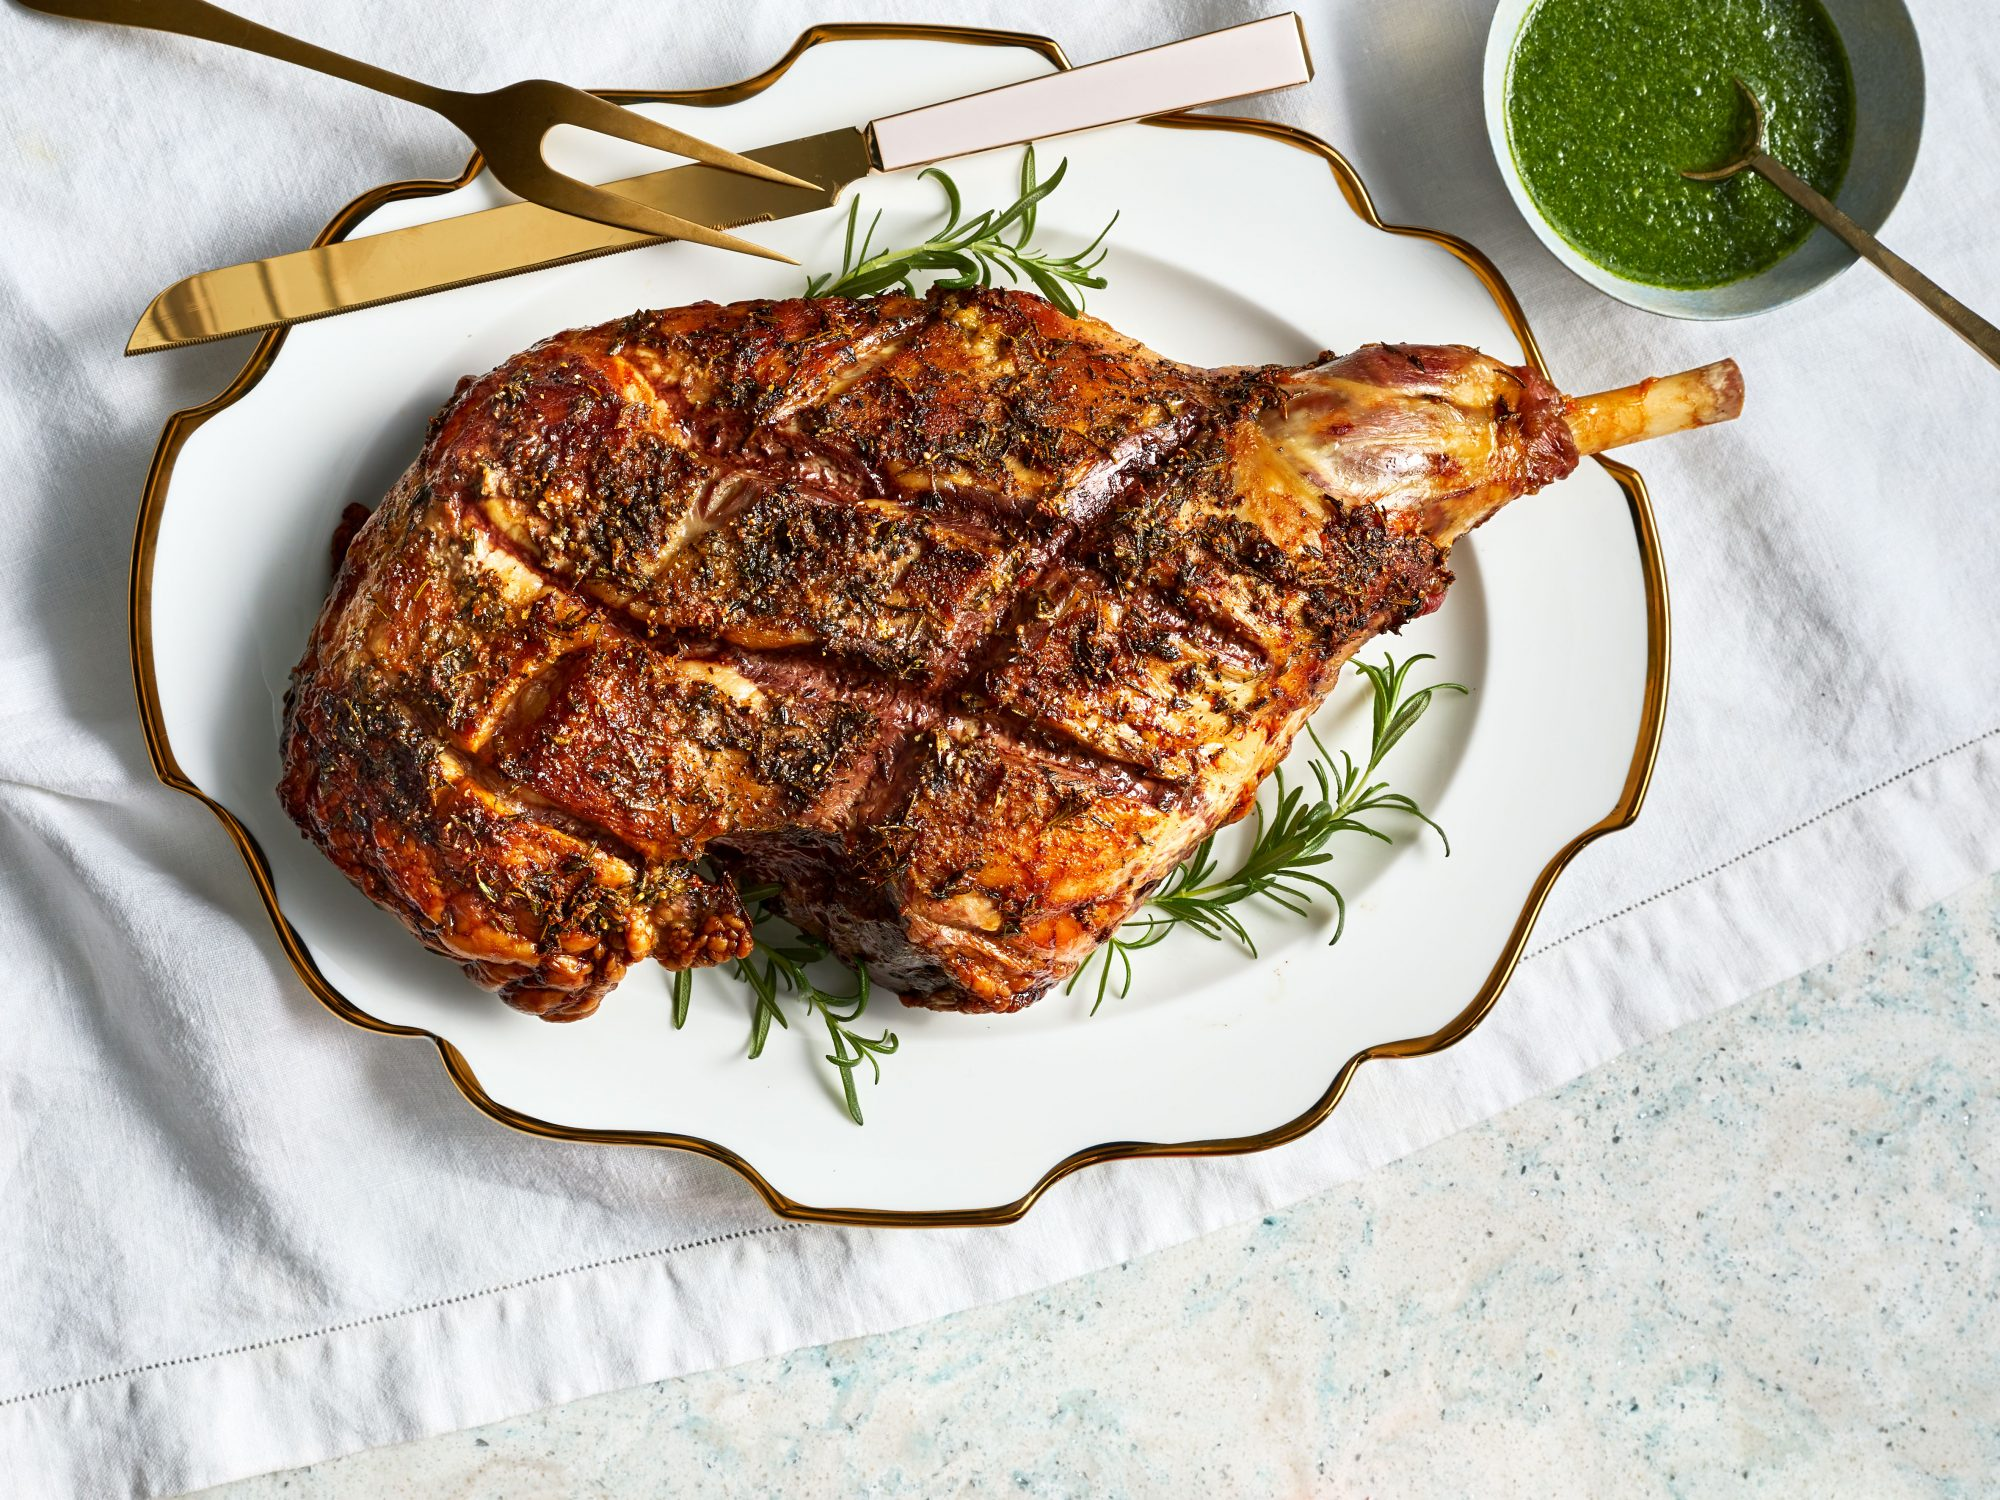 Herb-Crusted Roasted Leg of Lamb Recipe